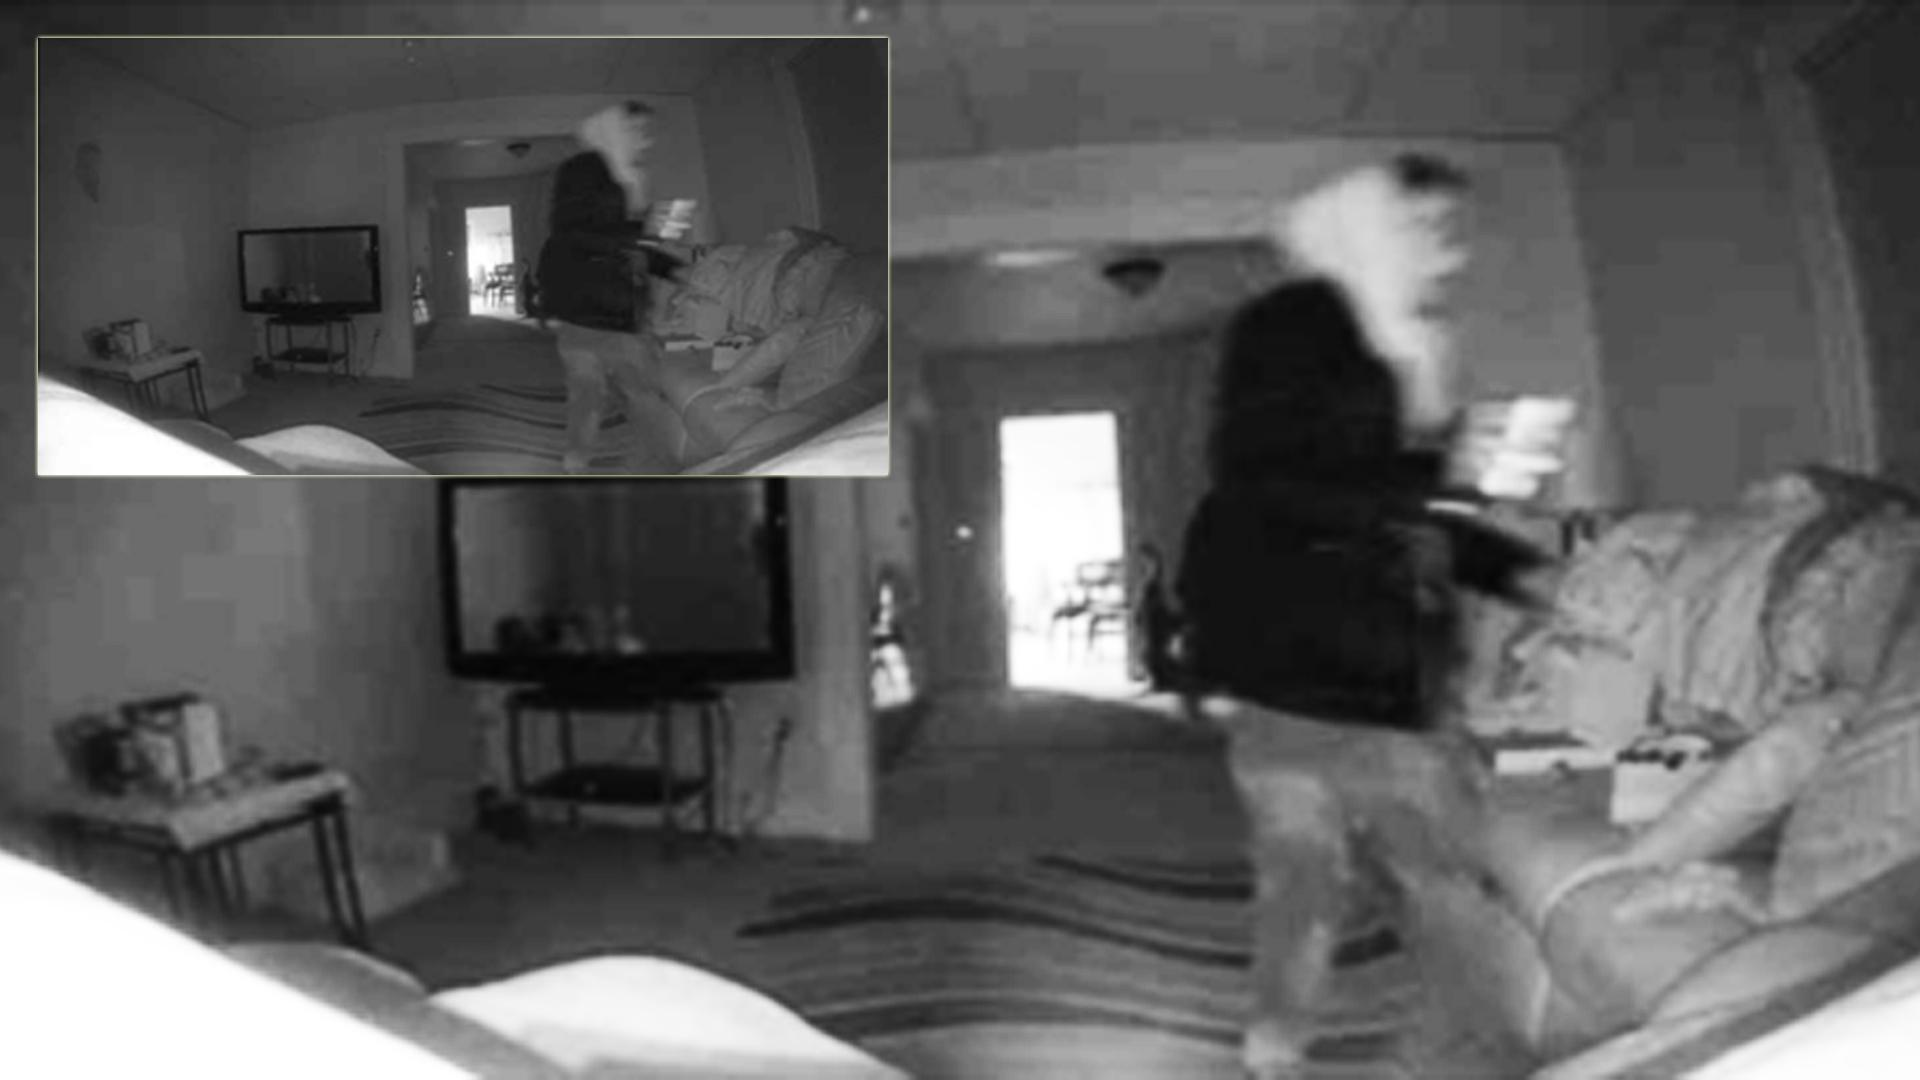 Miamisburg PD searching for suspects they say intentionally started duplex fire (Courtesy: Miamisburg Police Department)